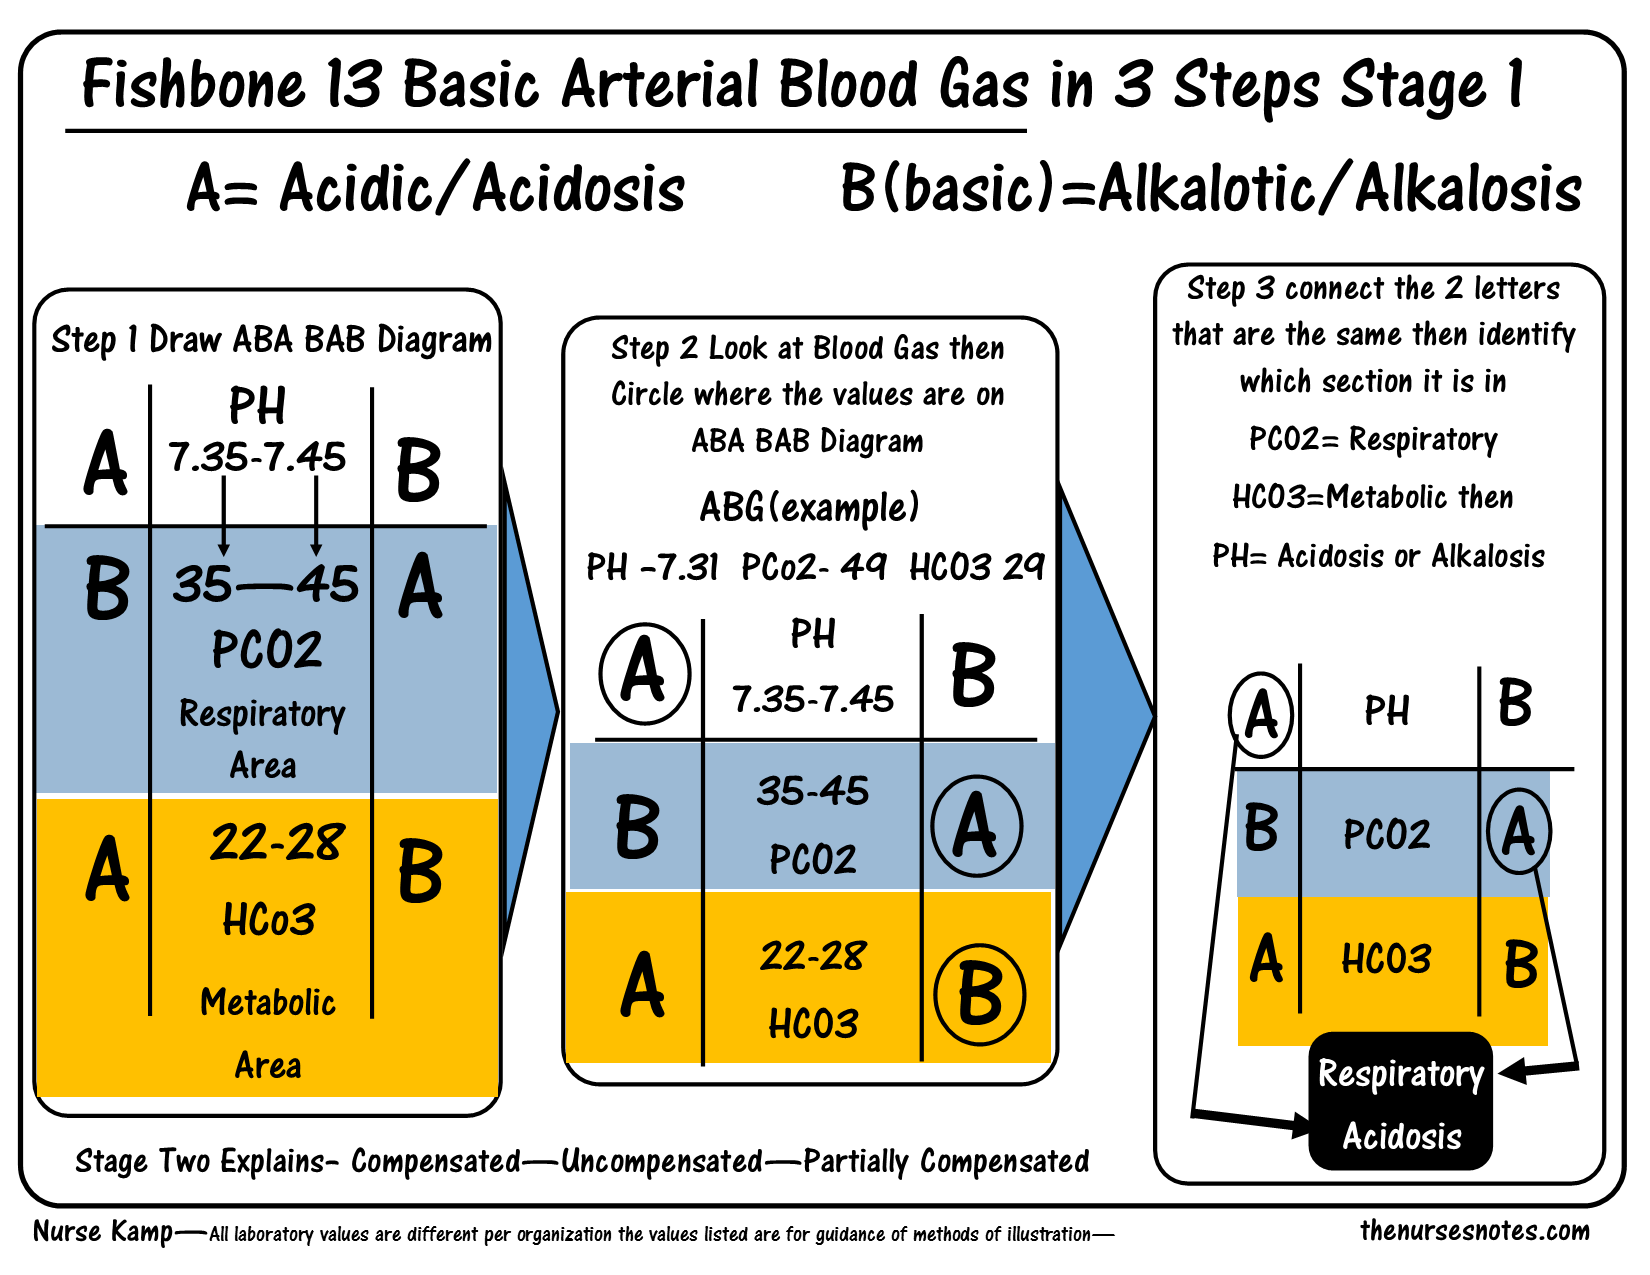 ABG Fishbone Diagram This is the 13th in the series of fishbones ...